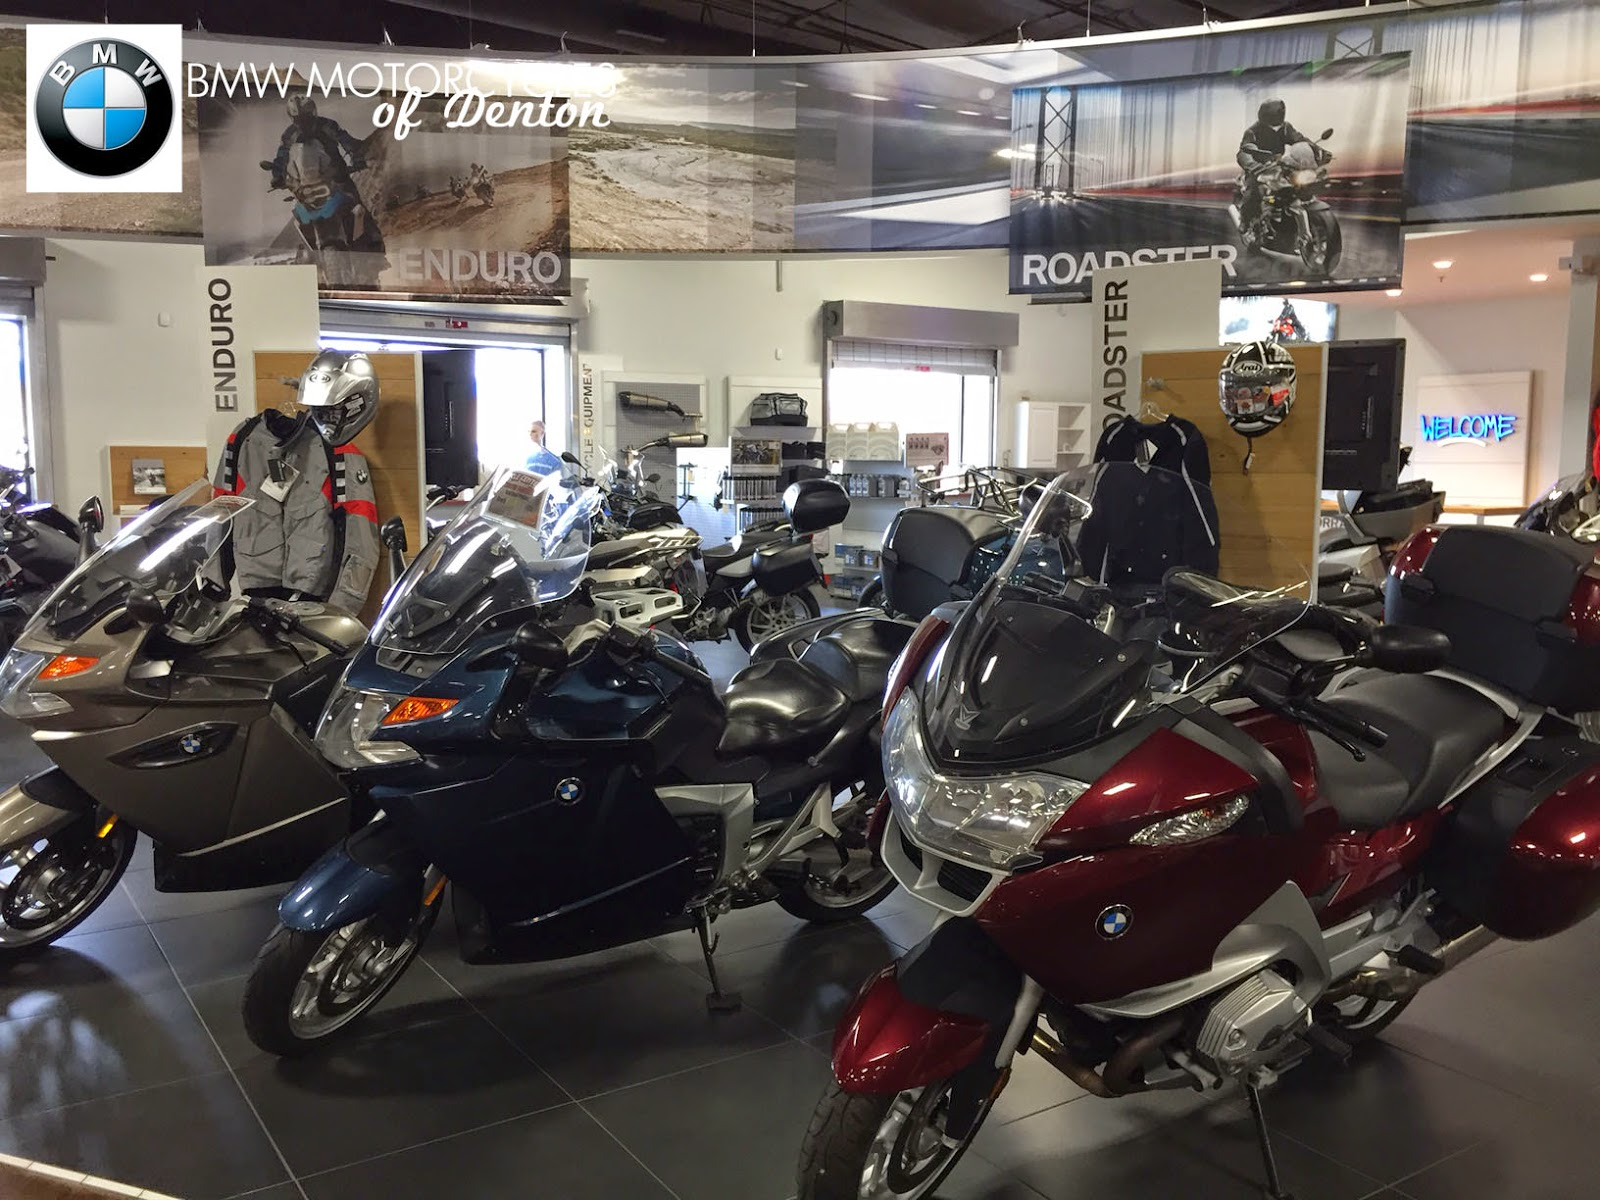 BMW Motorcycles of Denton: We are DFW's newest BMW Motorrad